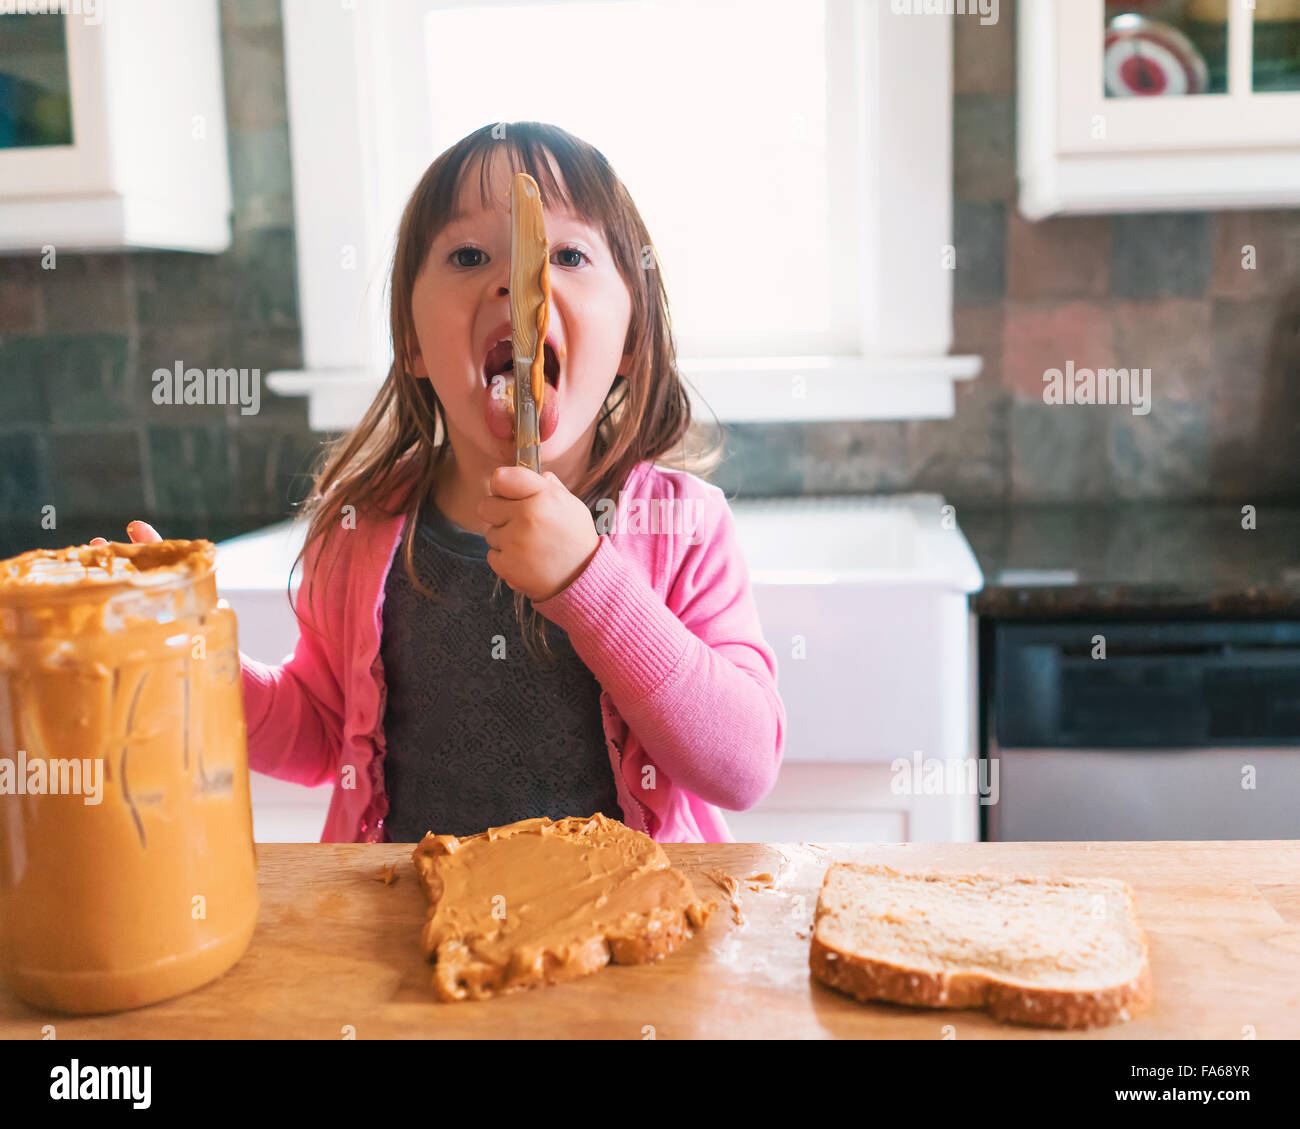 Girl making a peanut butter sandwich, licking the knife - Stock Image